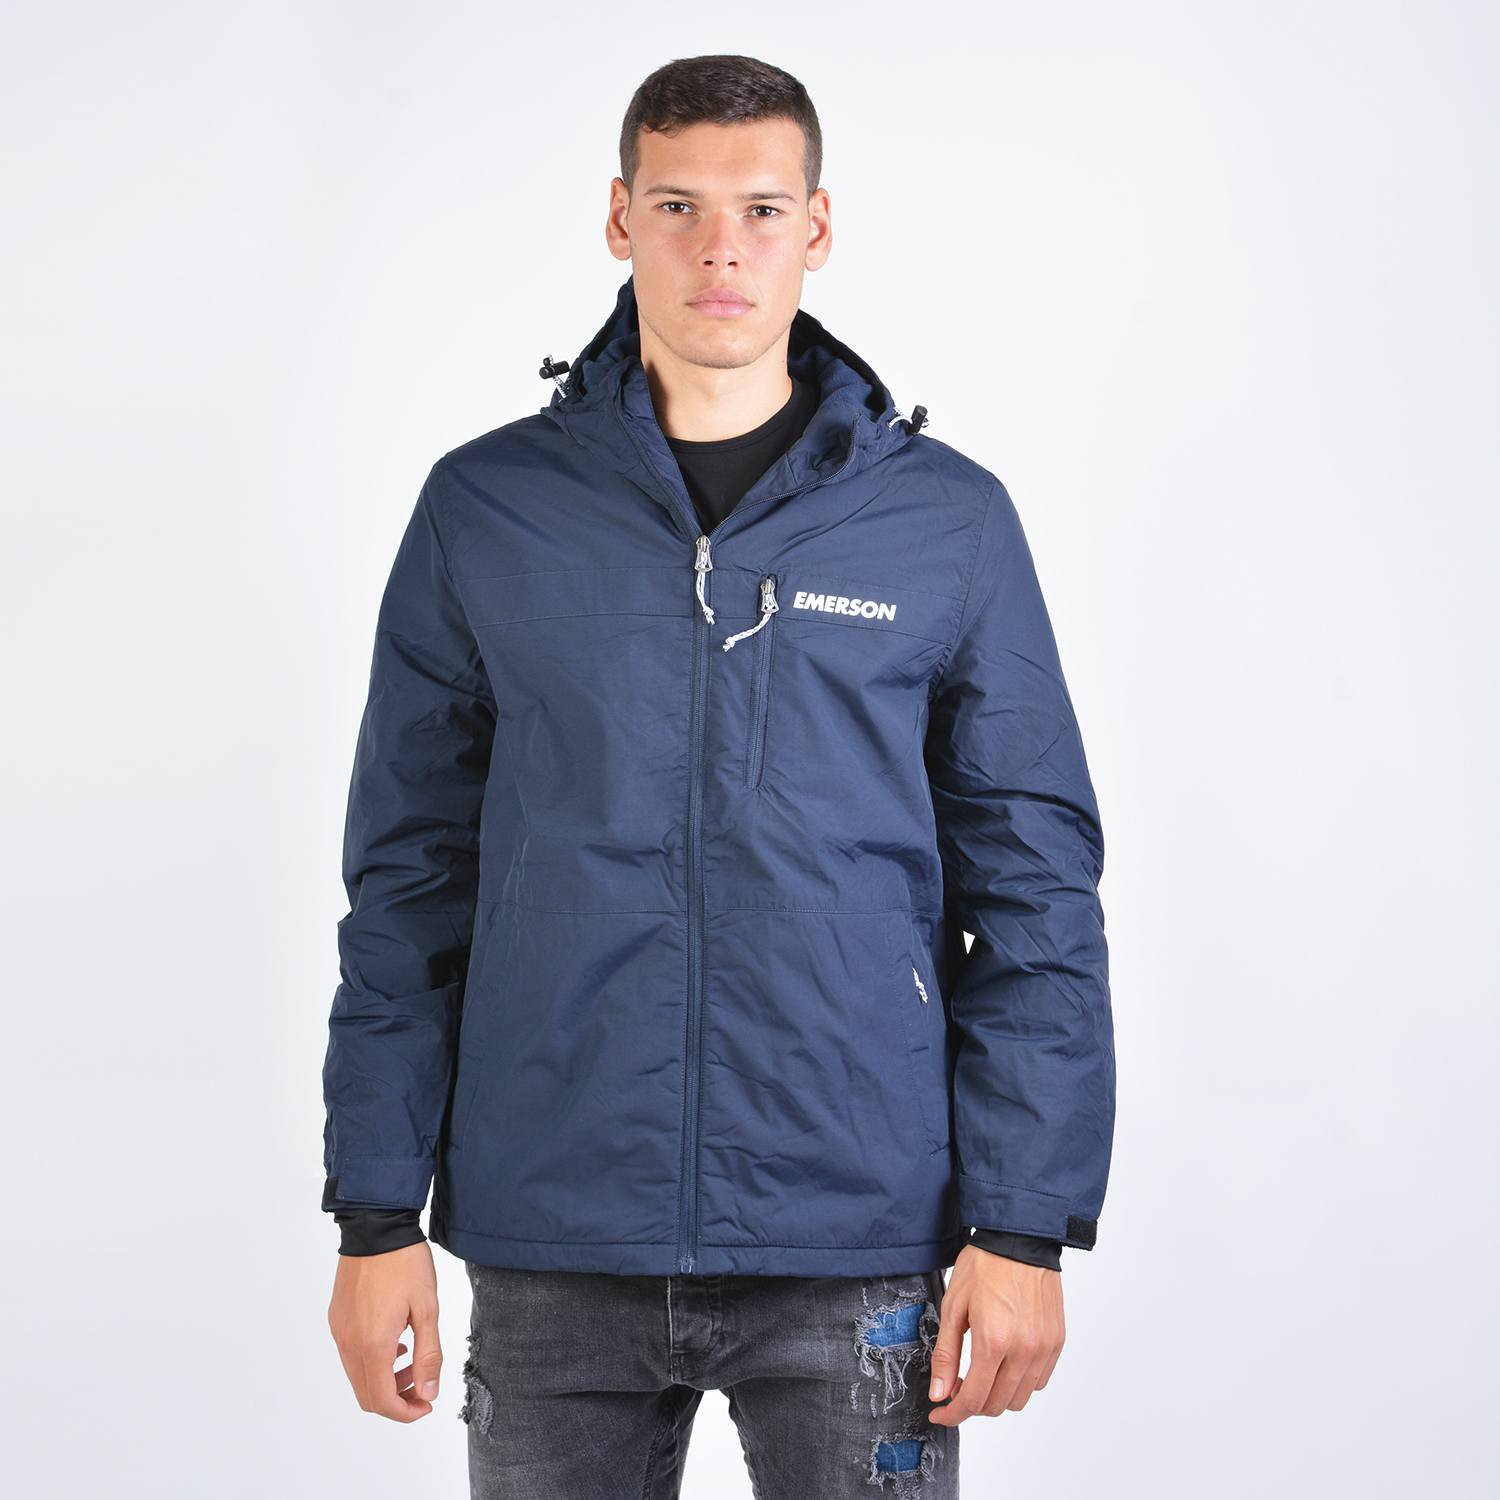 Emerson Men's Long Jacket With Hood (9000043009_35289)